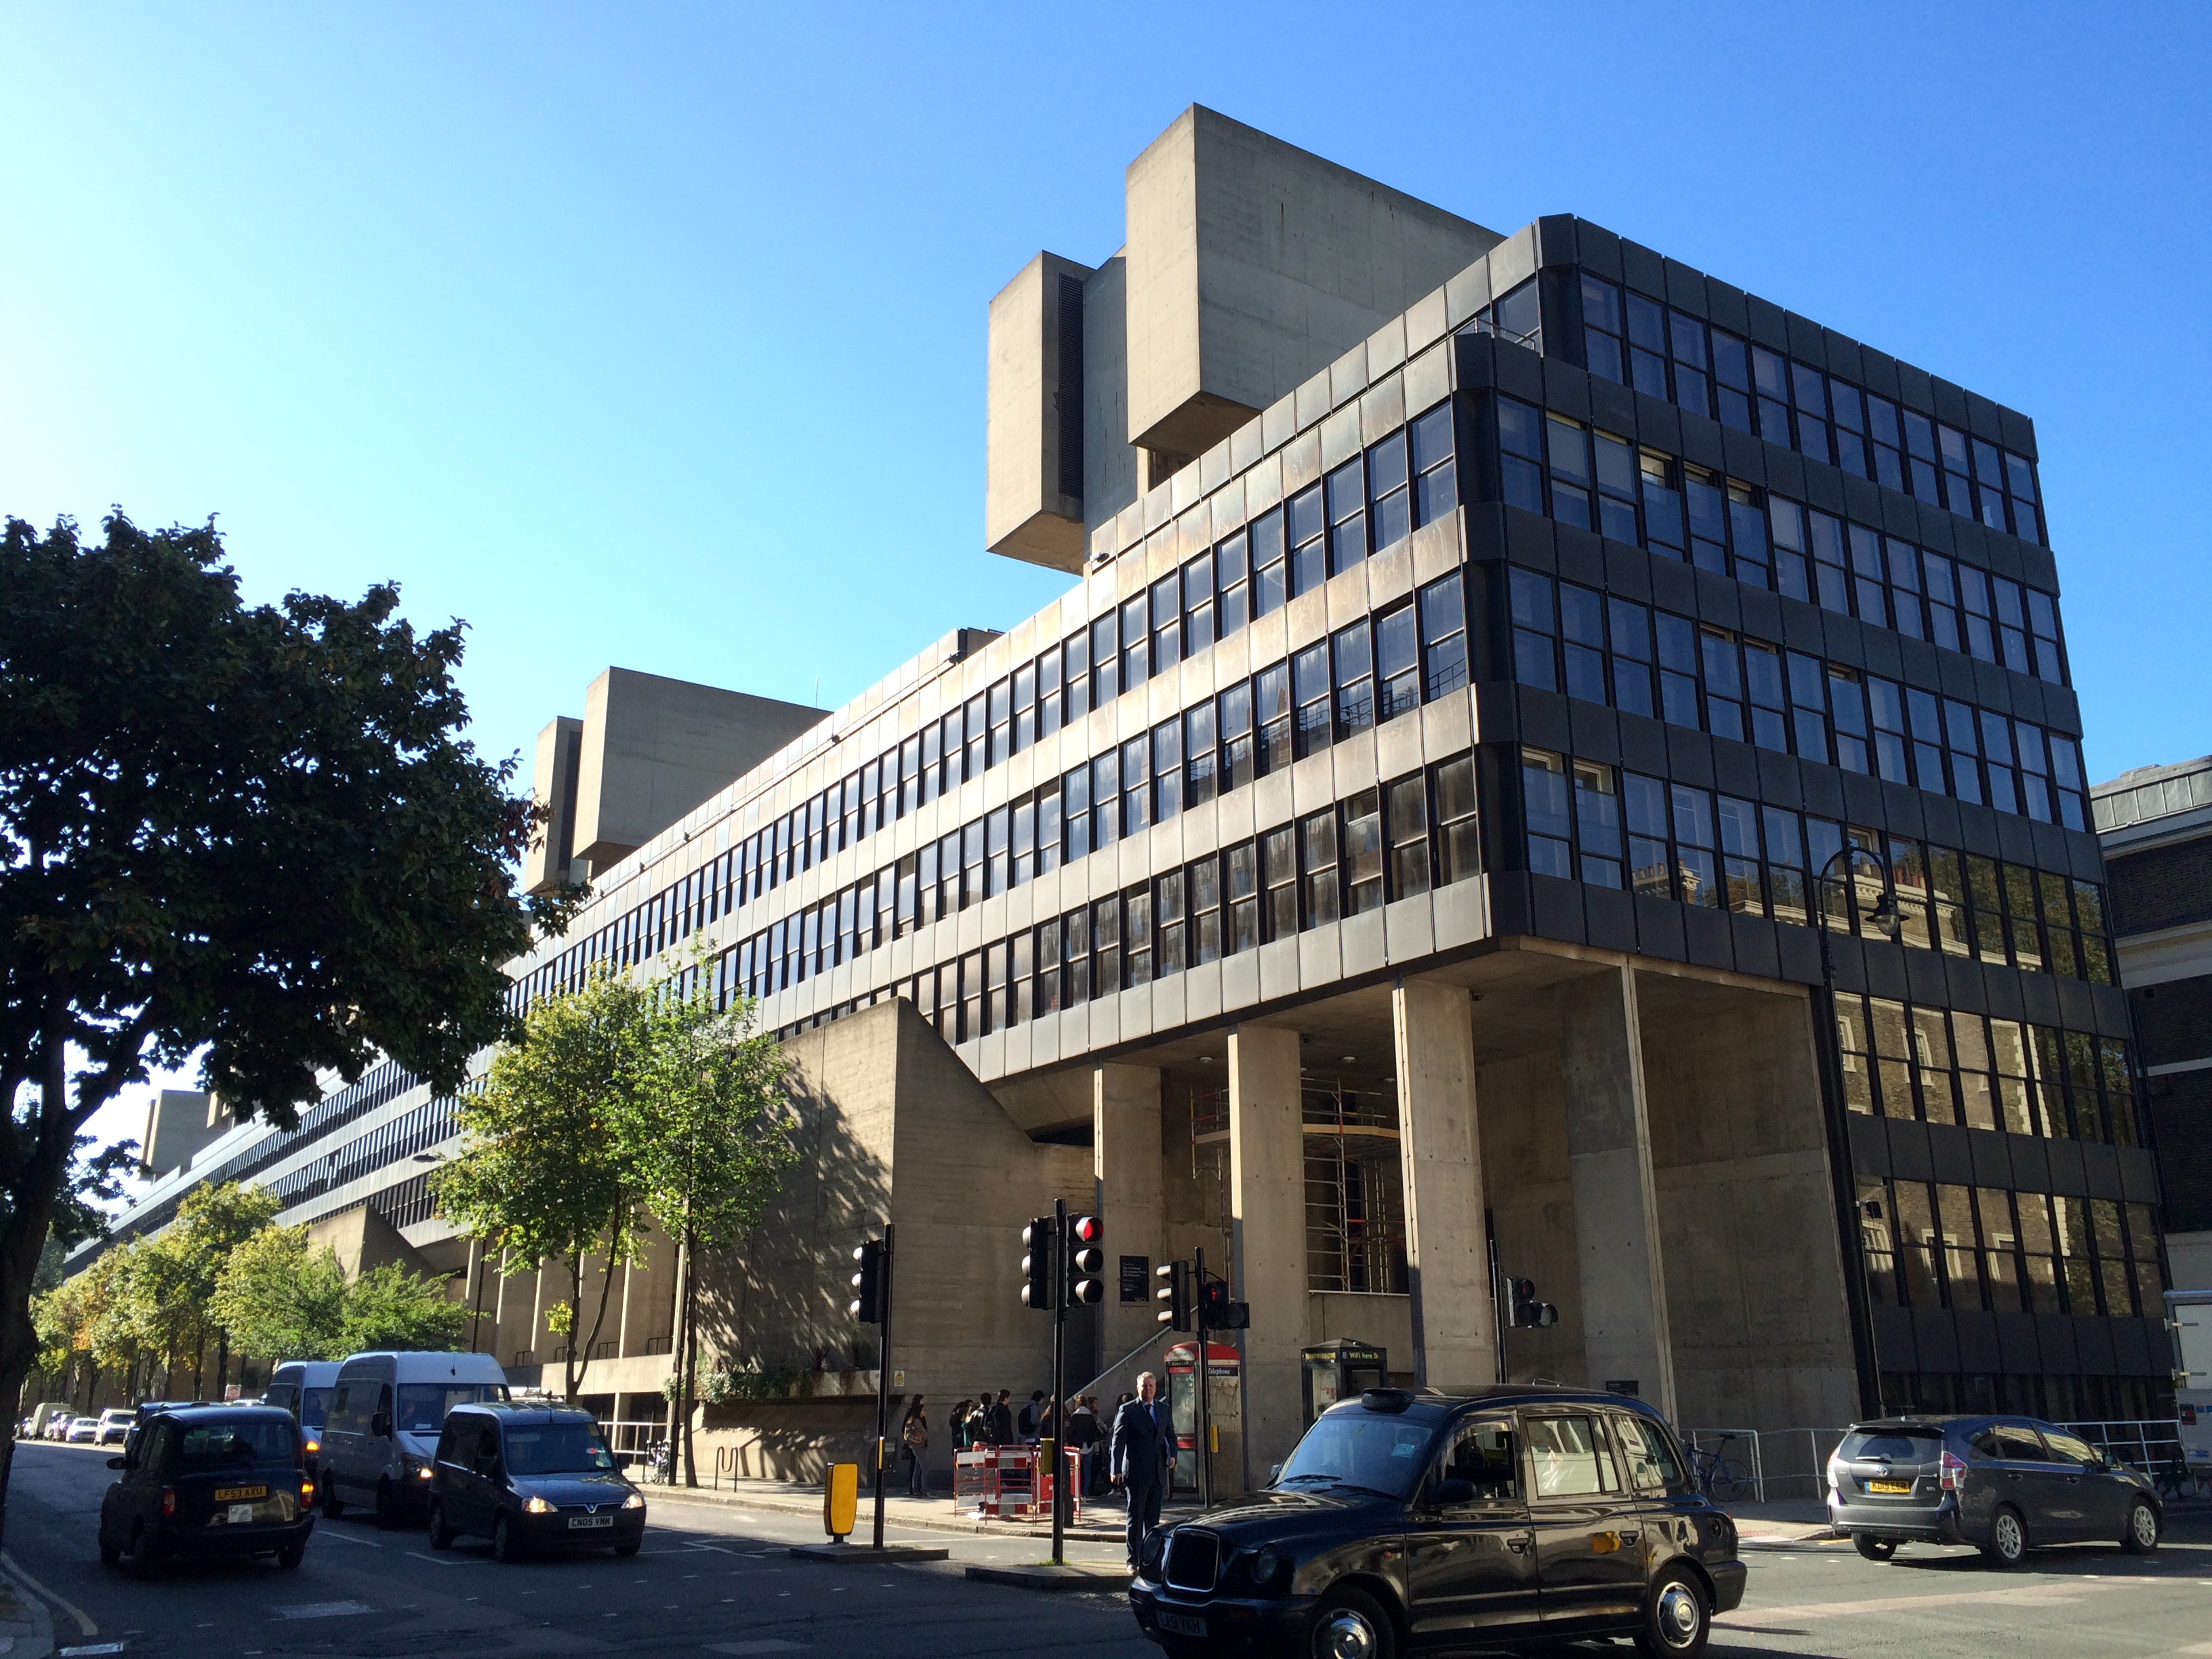 UCL Division of Psychology and Language Sciences - Wikipedia